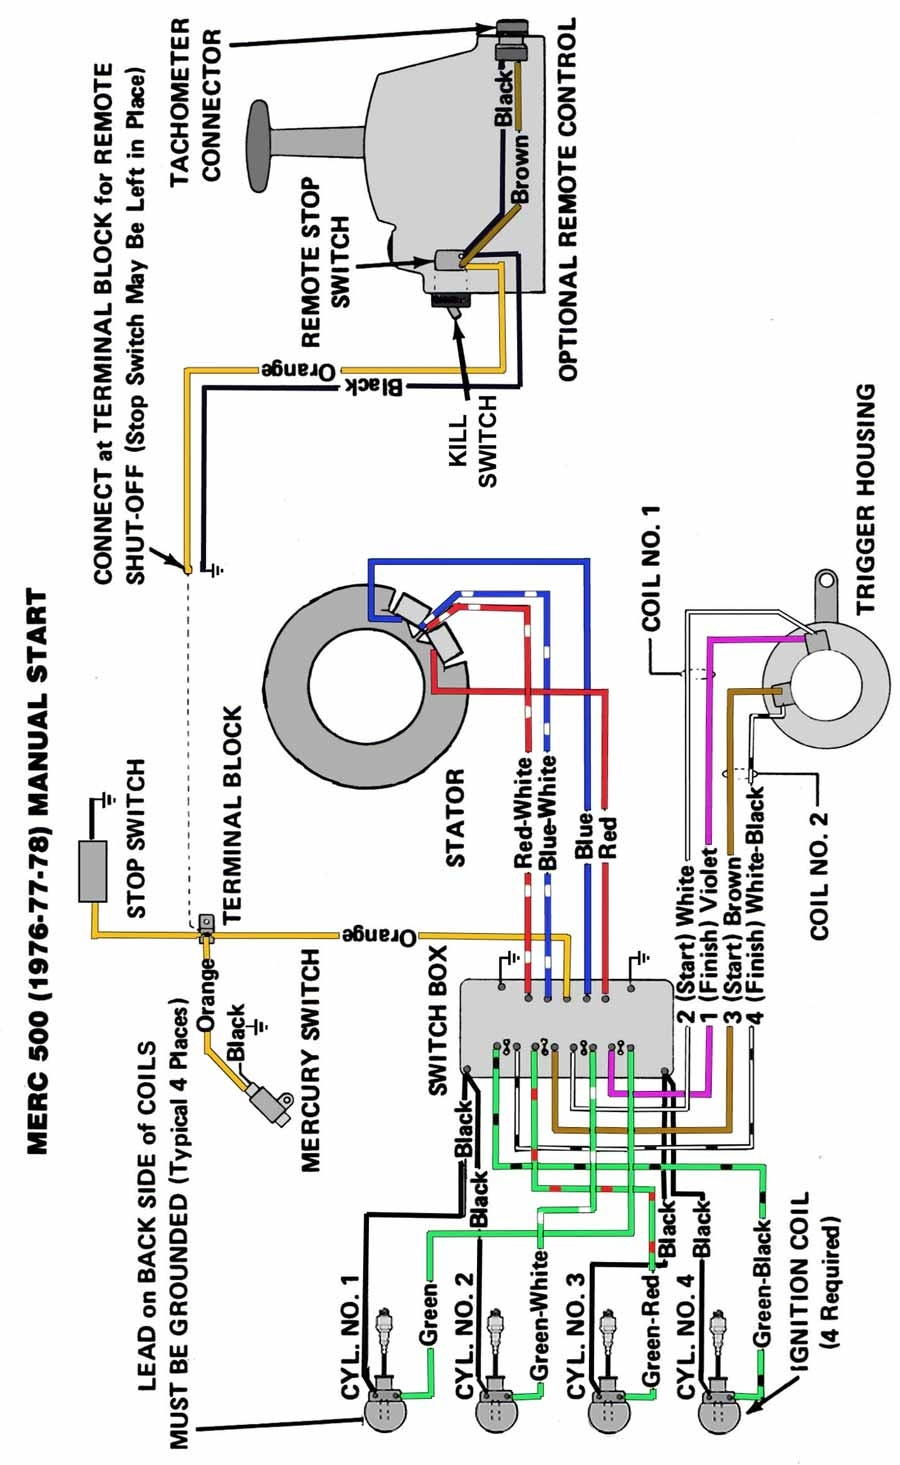 mercury outboard wiring diagrams mastertech marin intended for 76 evinrude wiring diagram?resize\\\\\\\\\\\\\\\=665%2C1082\\\\\\\\\\\\\\\&ssl\\\\\\\\\\\\\\\=1 mercury outboard ignition switch diagram color coded wiring Boat Ignition Switch Wiring Diagram at love-stories.co